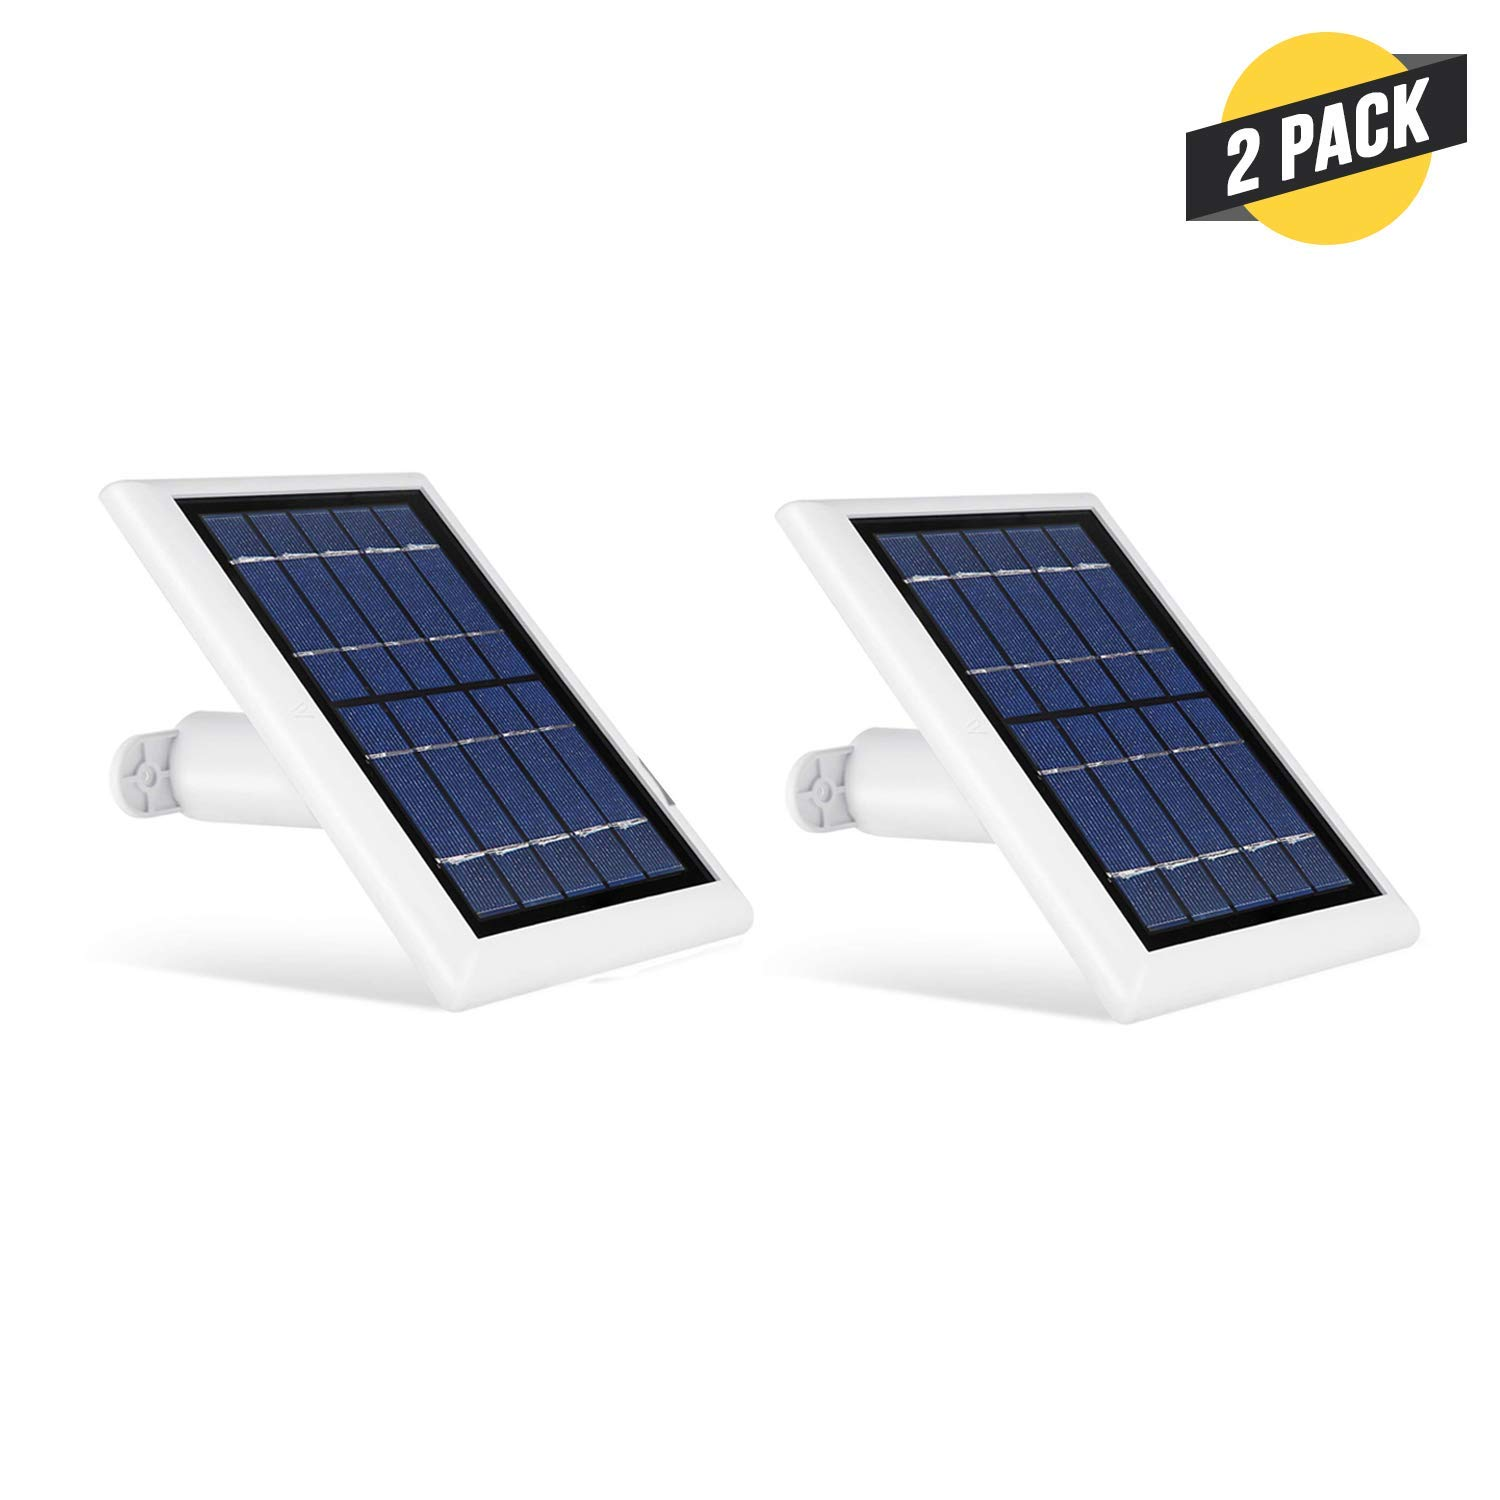 Wasserstein Solar Panel with 13.1ft/4m Cable Compatible with Arlo Ultra - Power Your Arlo Surveillance Camera continuously (2-Pack, White) (Not Compatible with Arlo Pro/Pro2) by Wasserstein